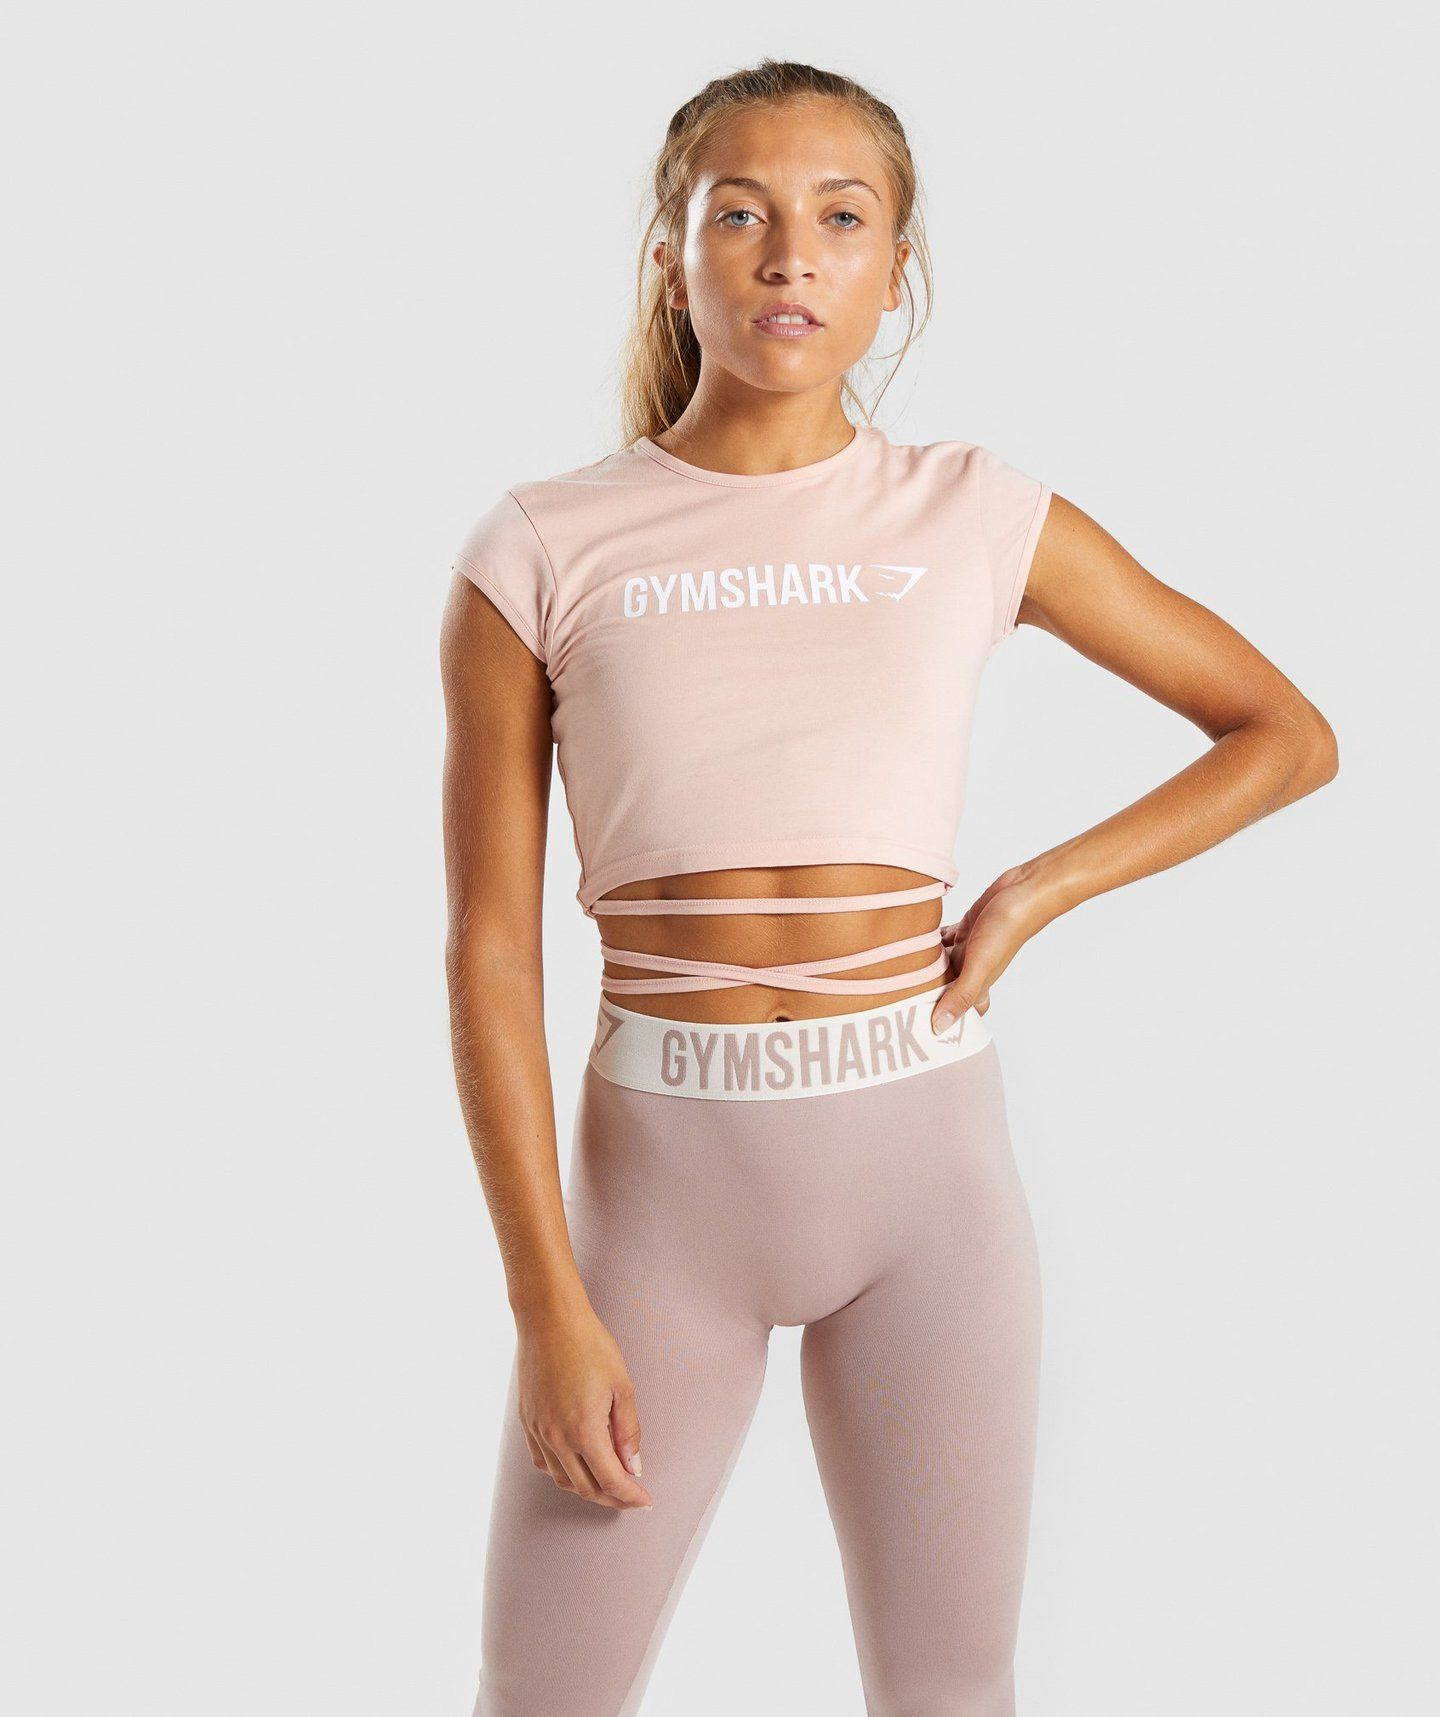 8546355cba908 Gymshark Ribbon Capped Sleeve Crop Top - Blush Nude 4